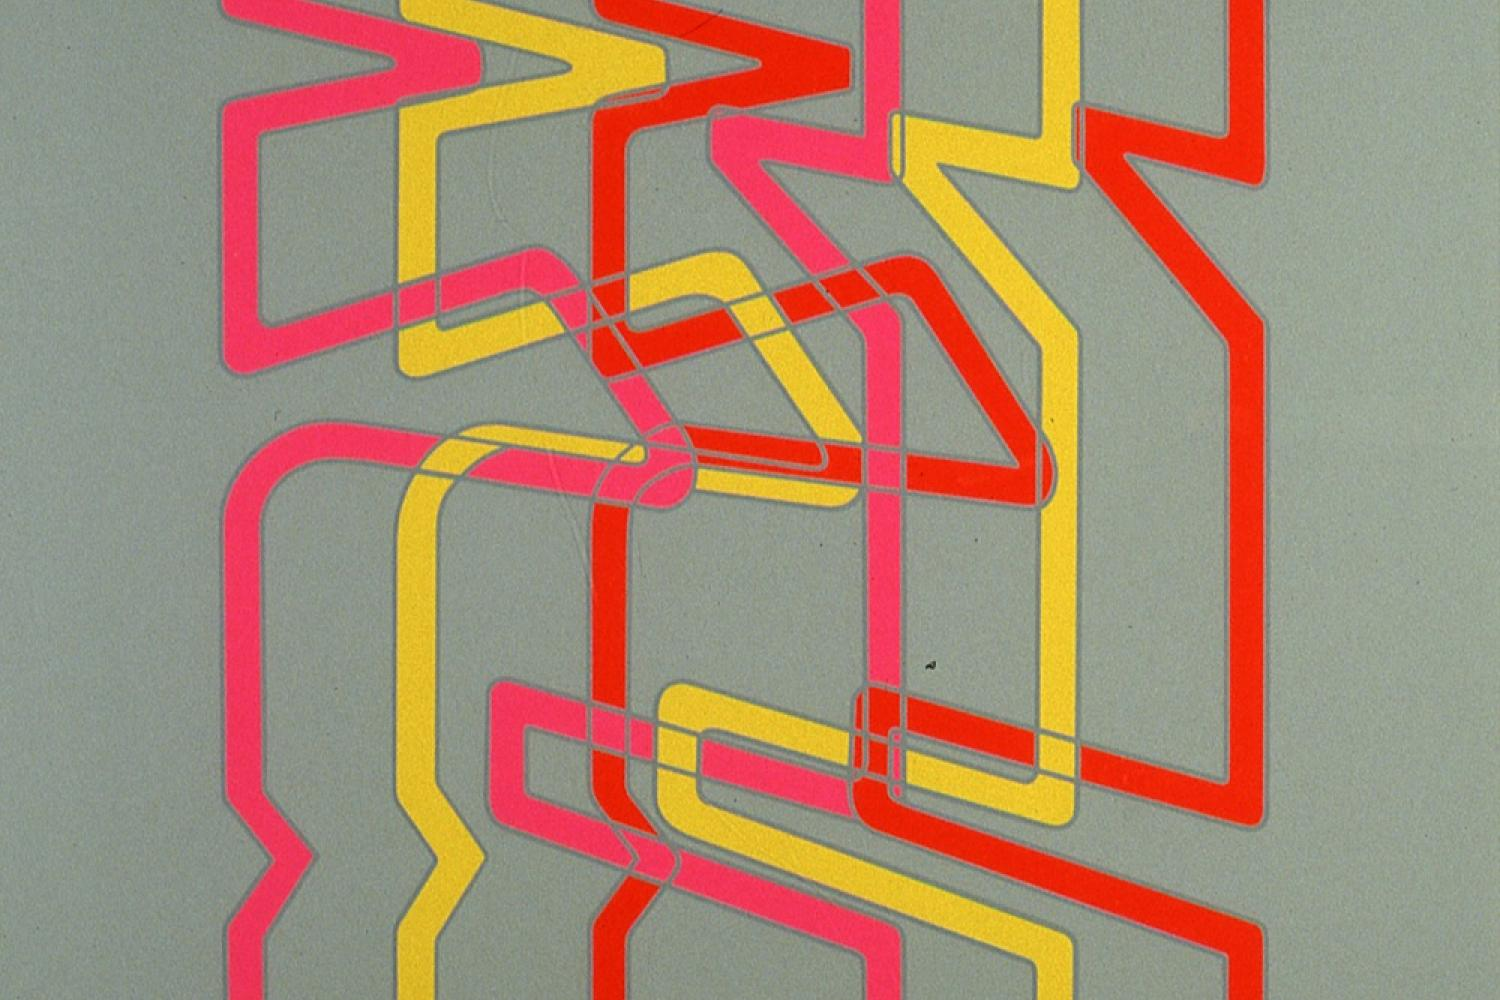 grey background with pink, red and yellow lines